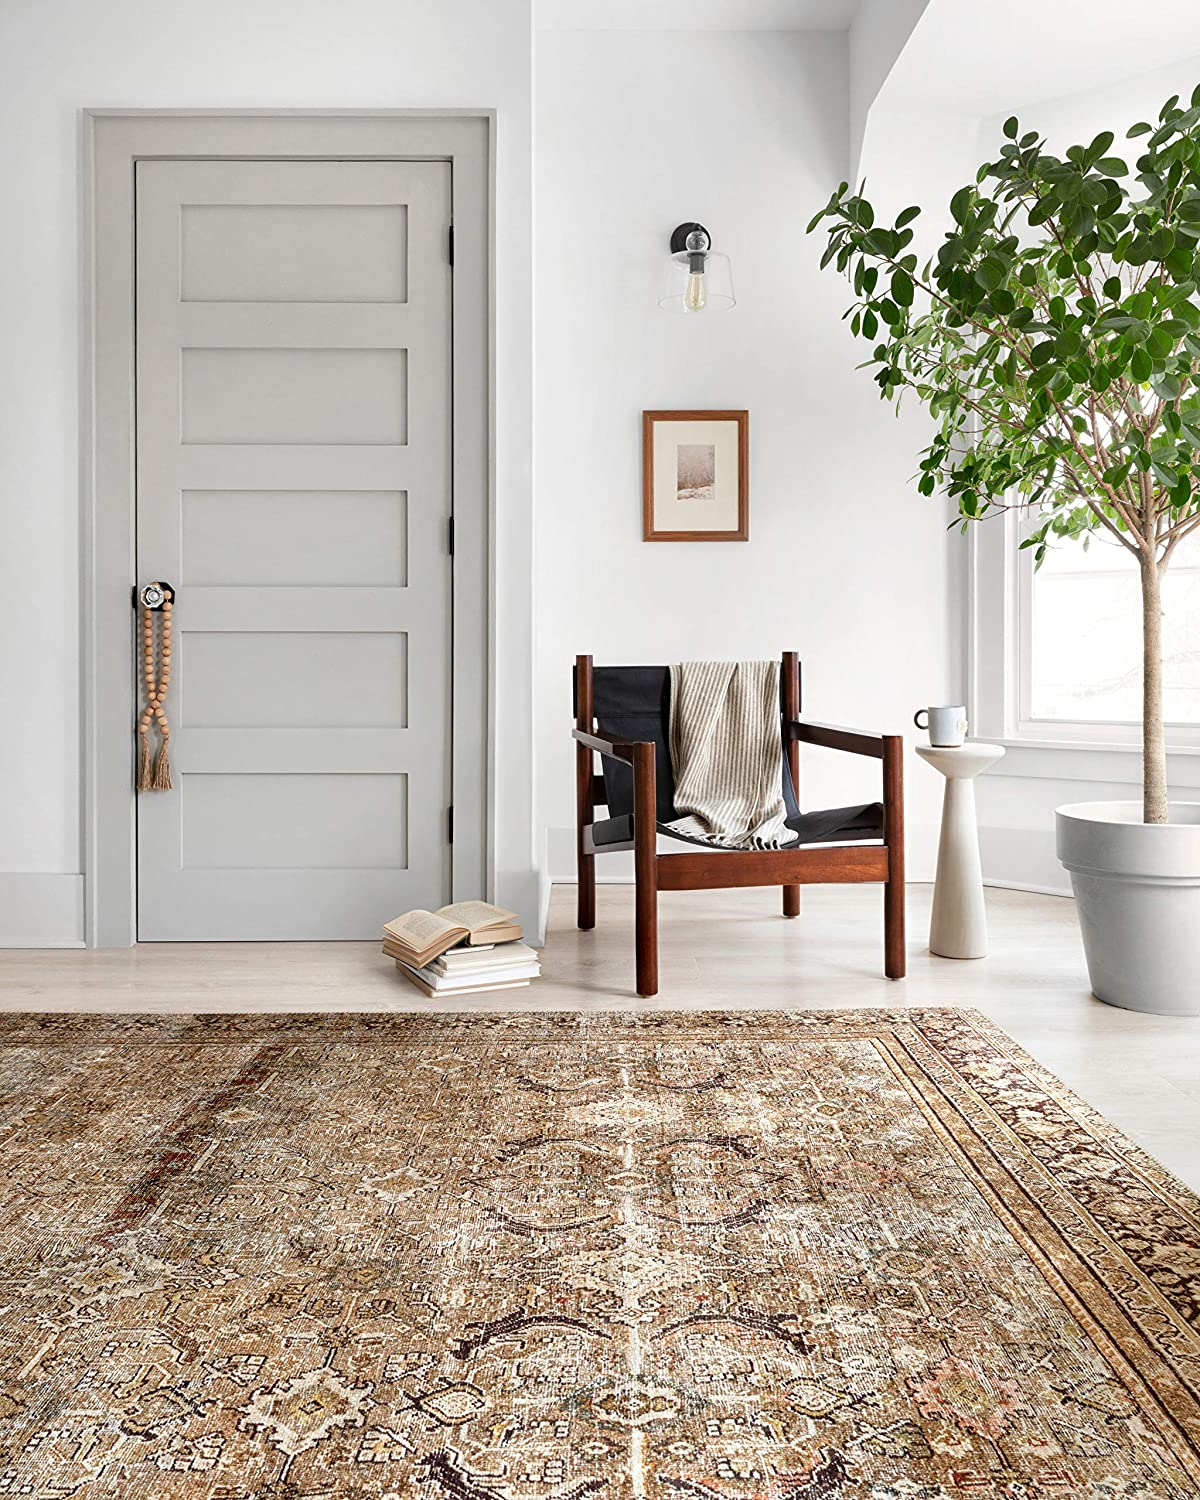 Shop Loloi II Layla Collection Printed Area Rugs from Amazon on Openhaus